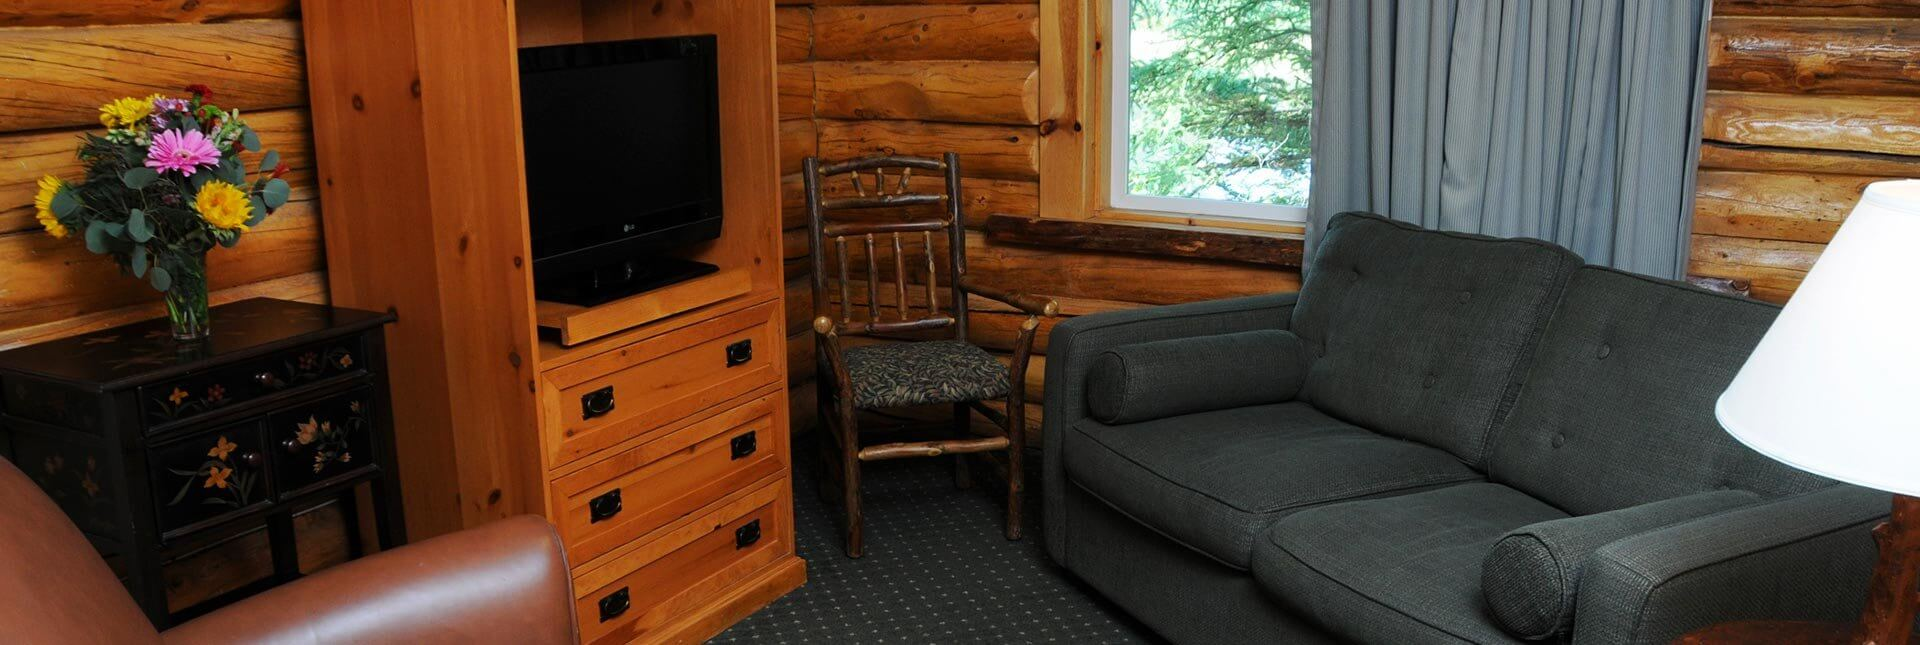 Cabin Interior - Room 2